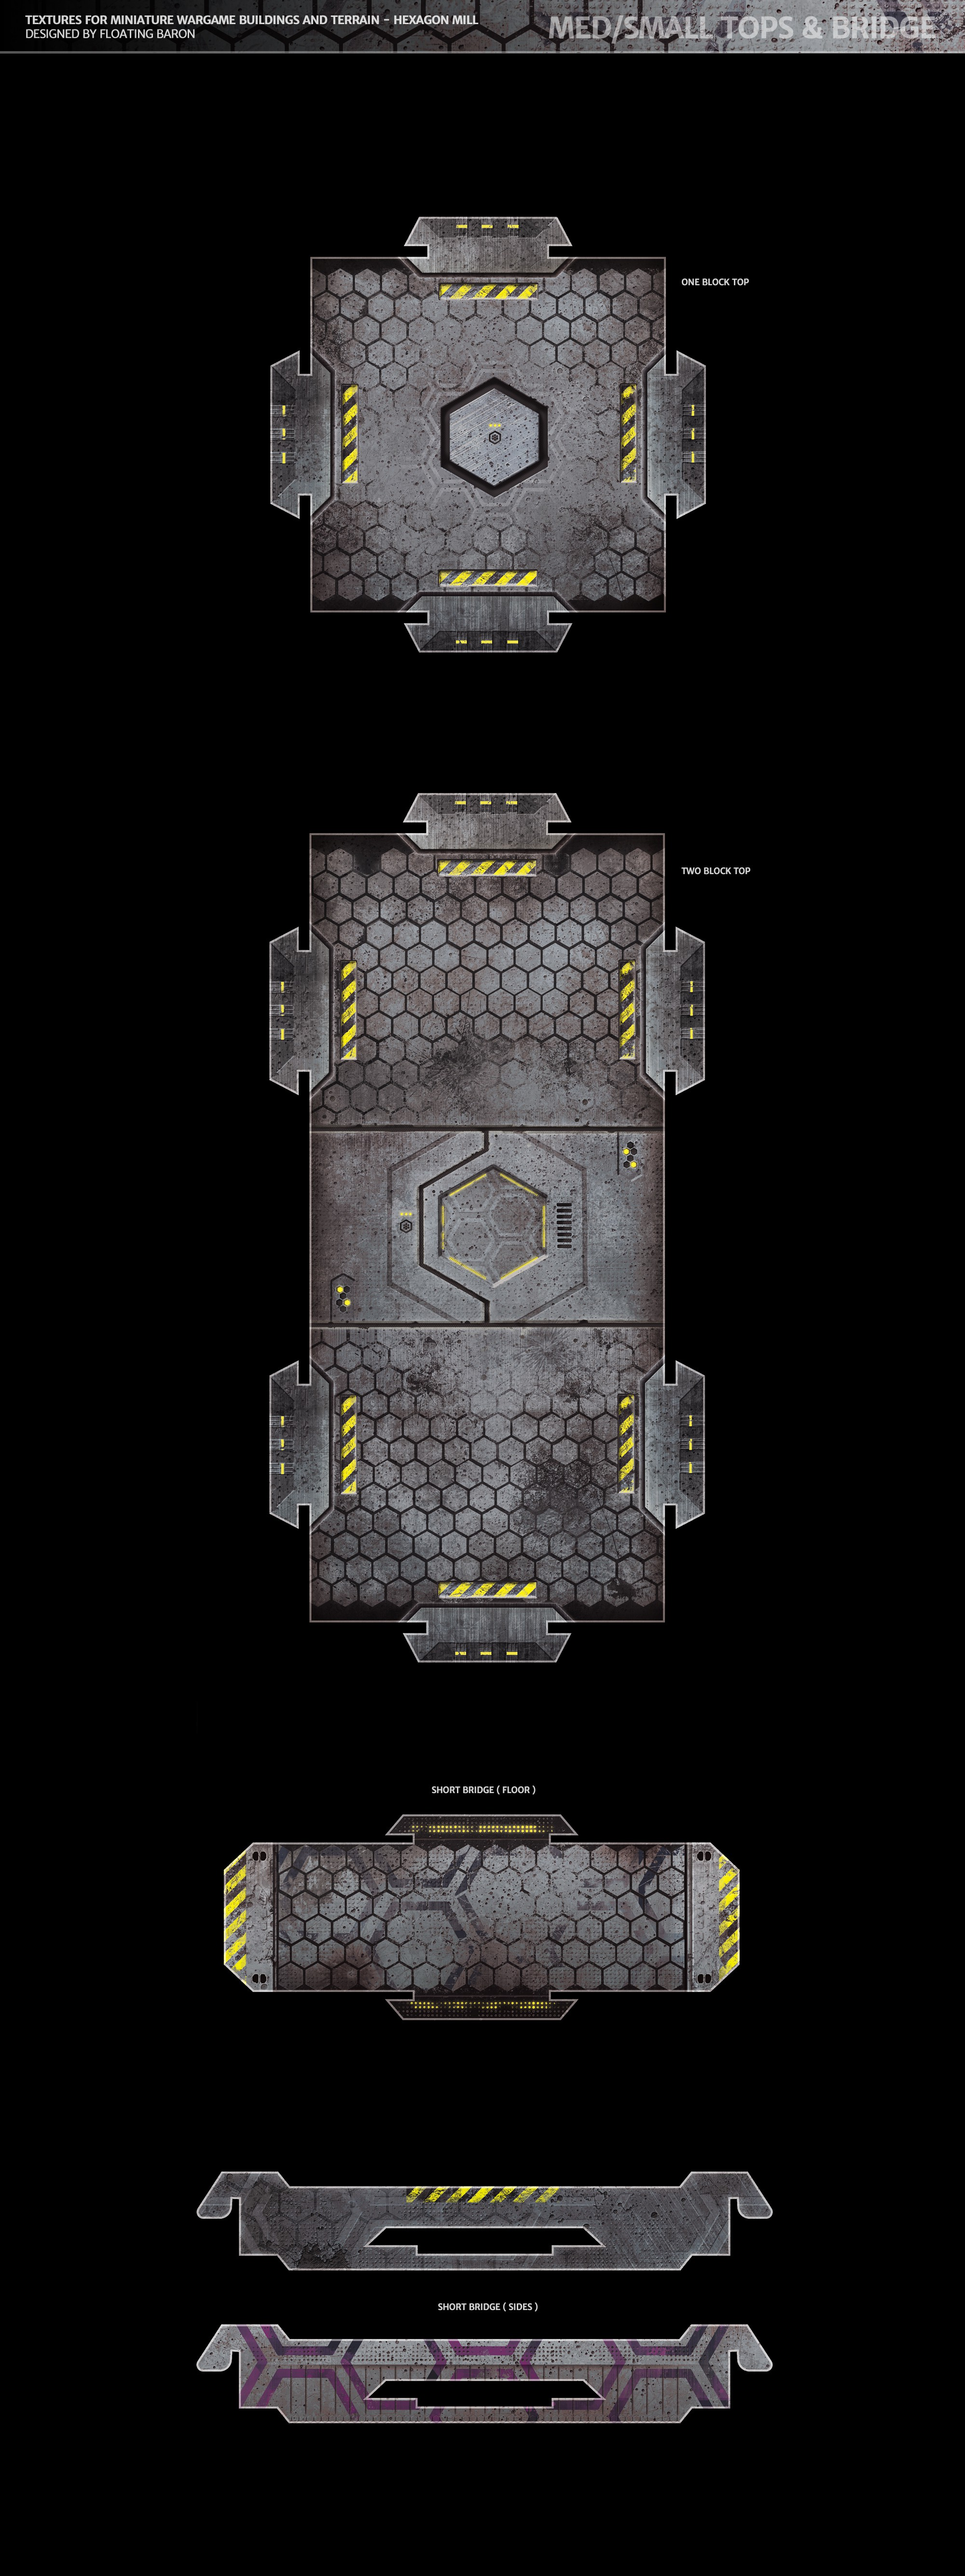 Create Textures for Miniature Wargame Buildings and Terrain